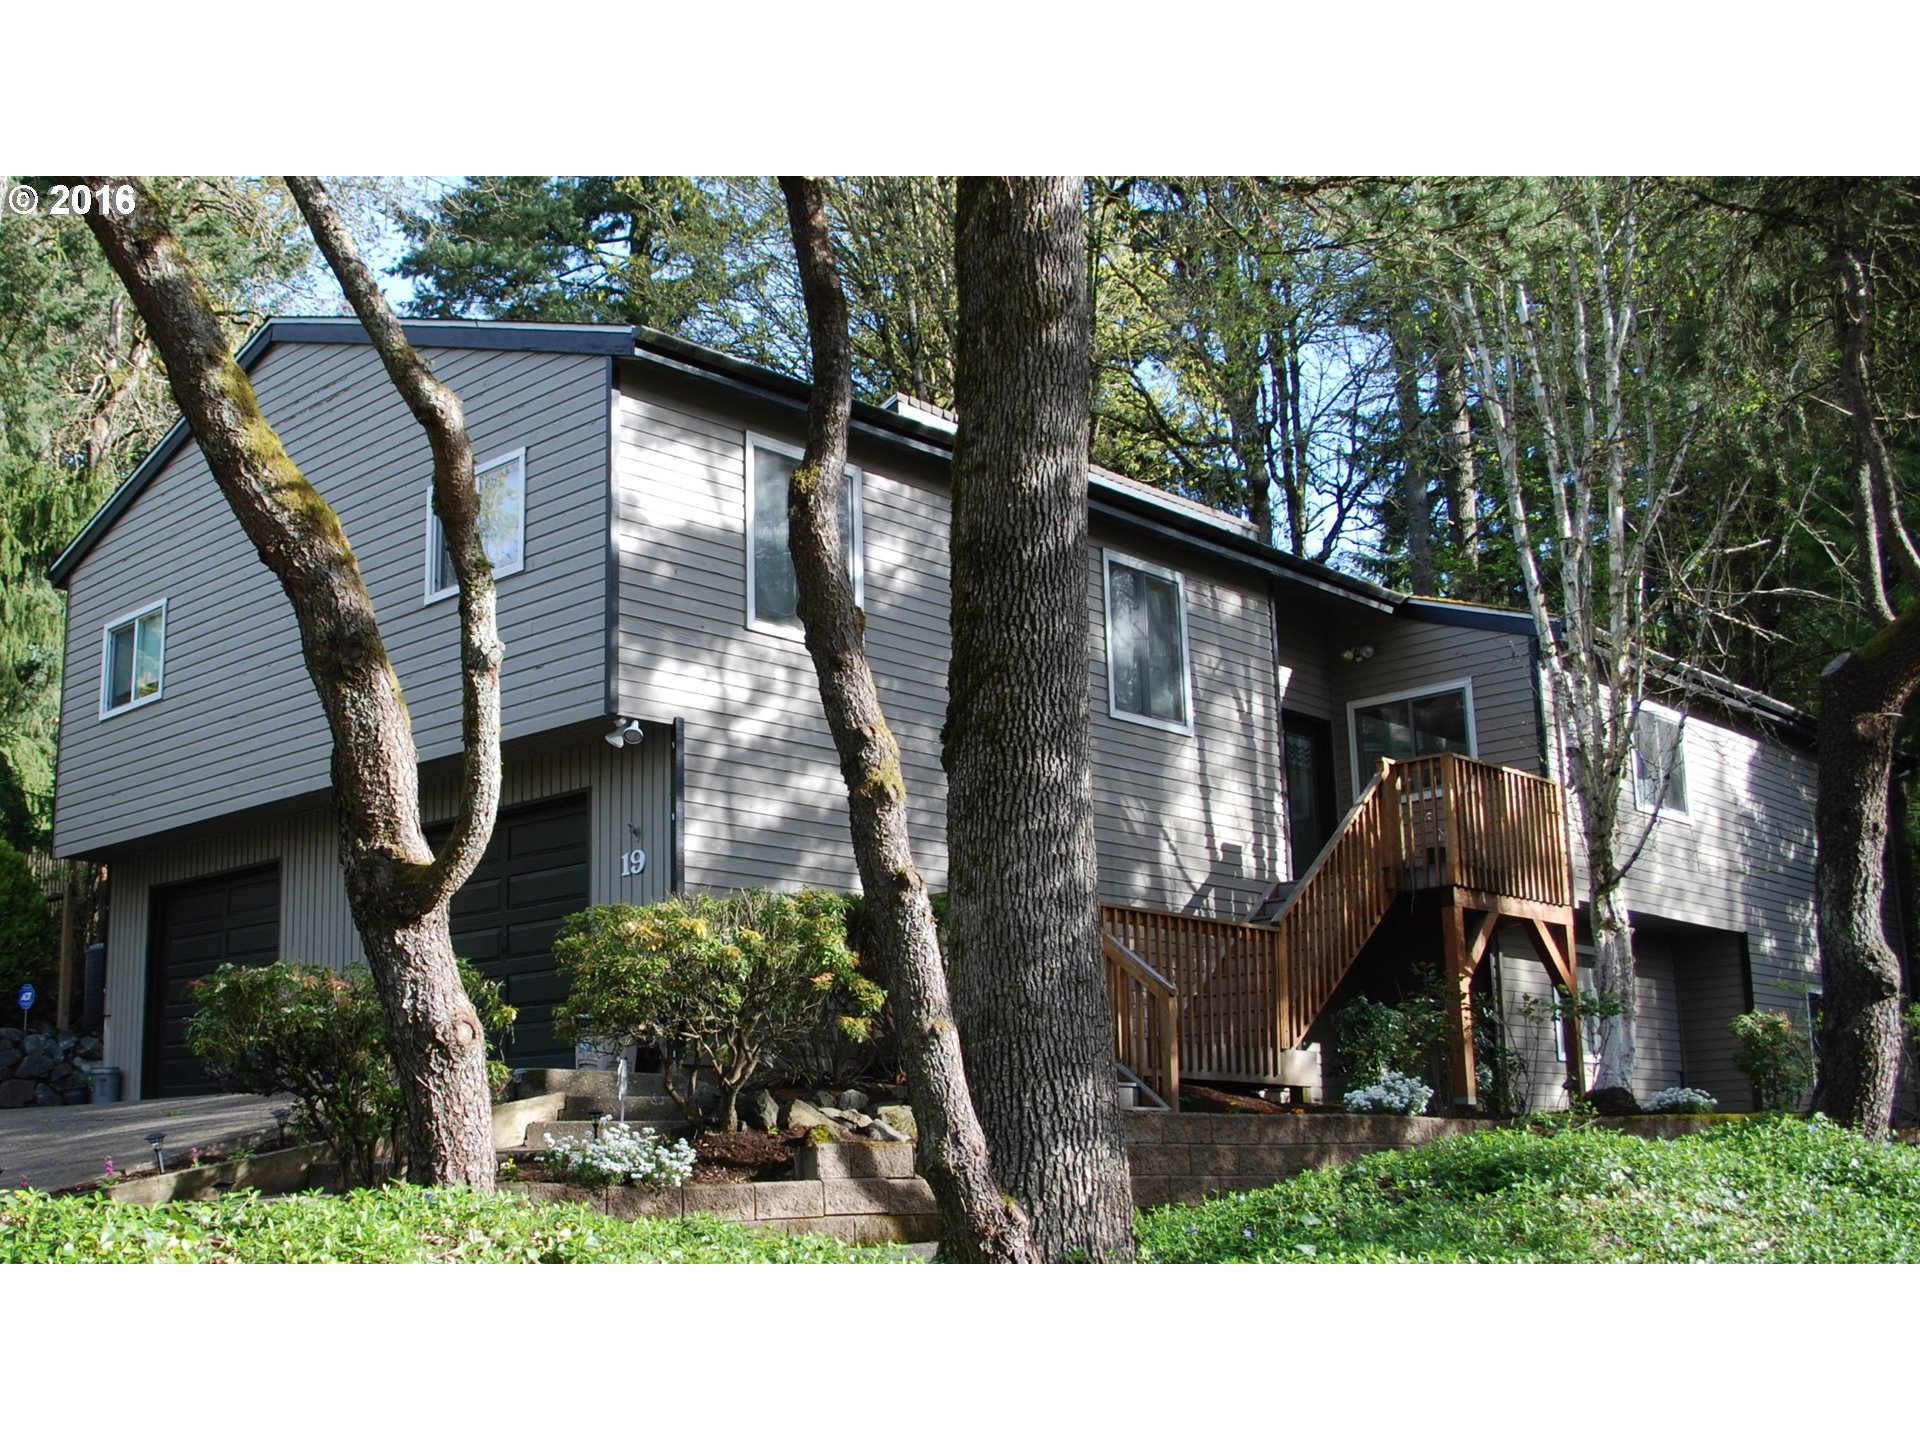 19 Falstaff St, Lake Oswego, OR